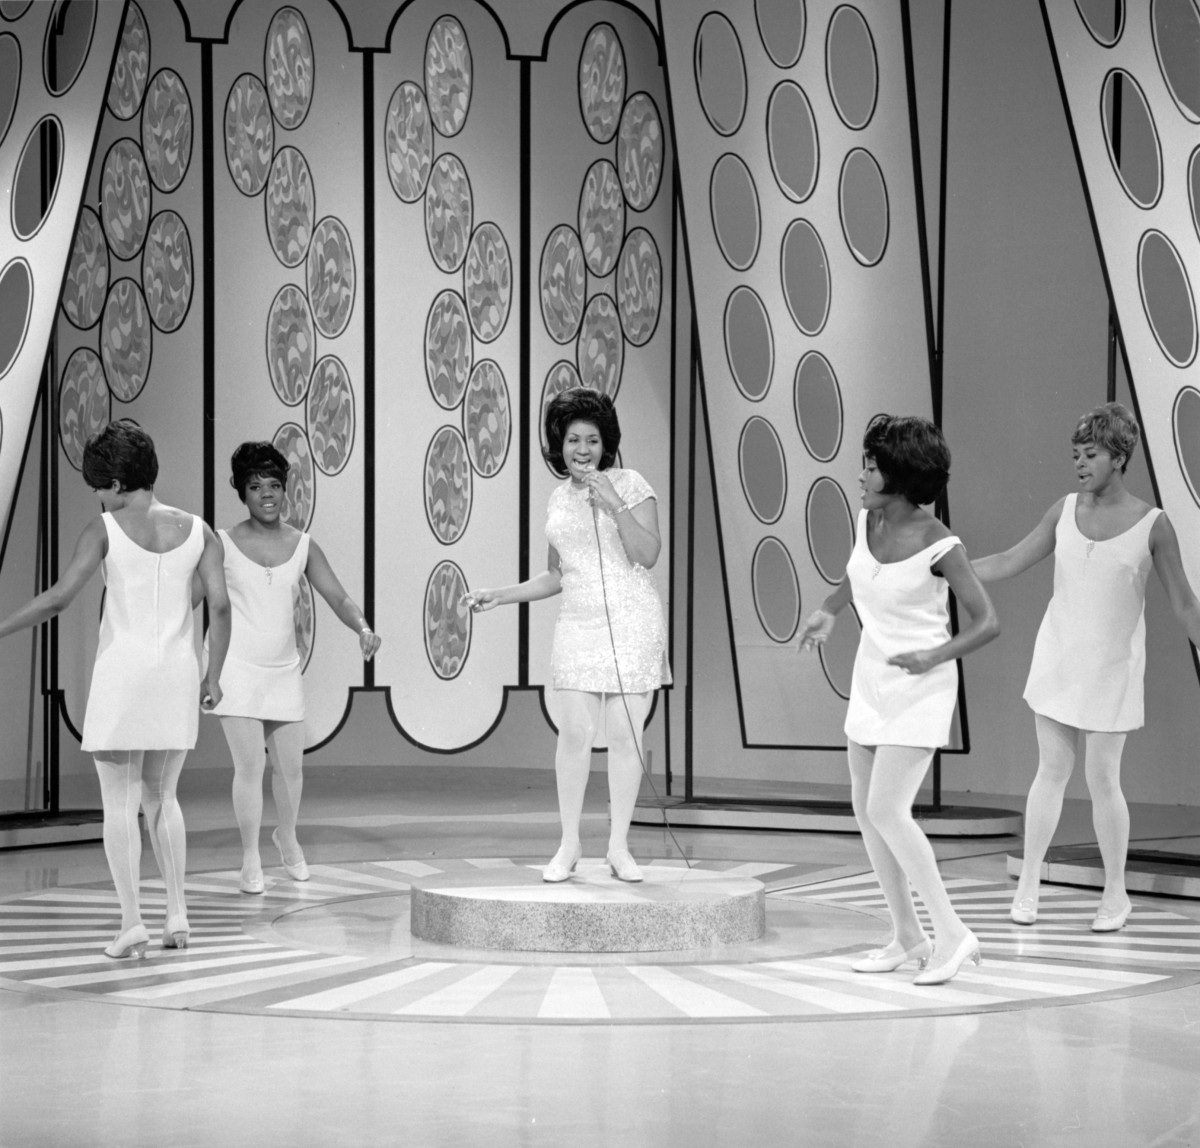 Aretha Franklin: Surrounded by backup dancers, Aretha Franklin grows as a star after appearing on The Jonathan Winters Show on January 5, 1968. (Photo by CBS via Getty  Images)